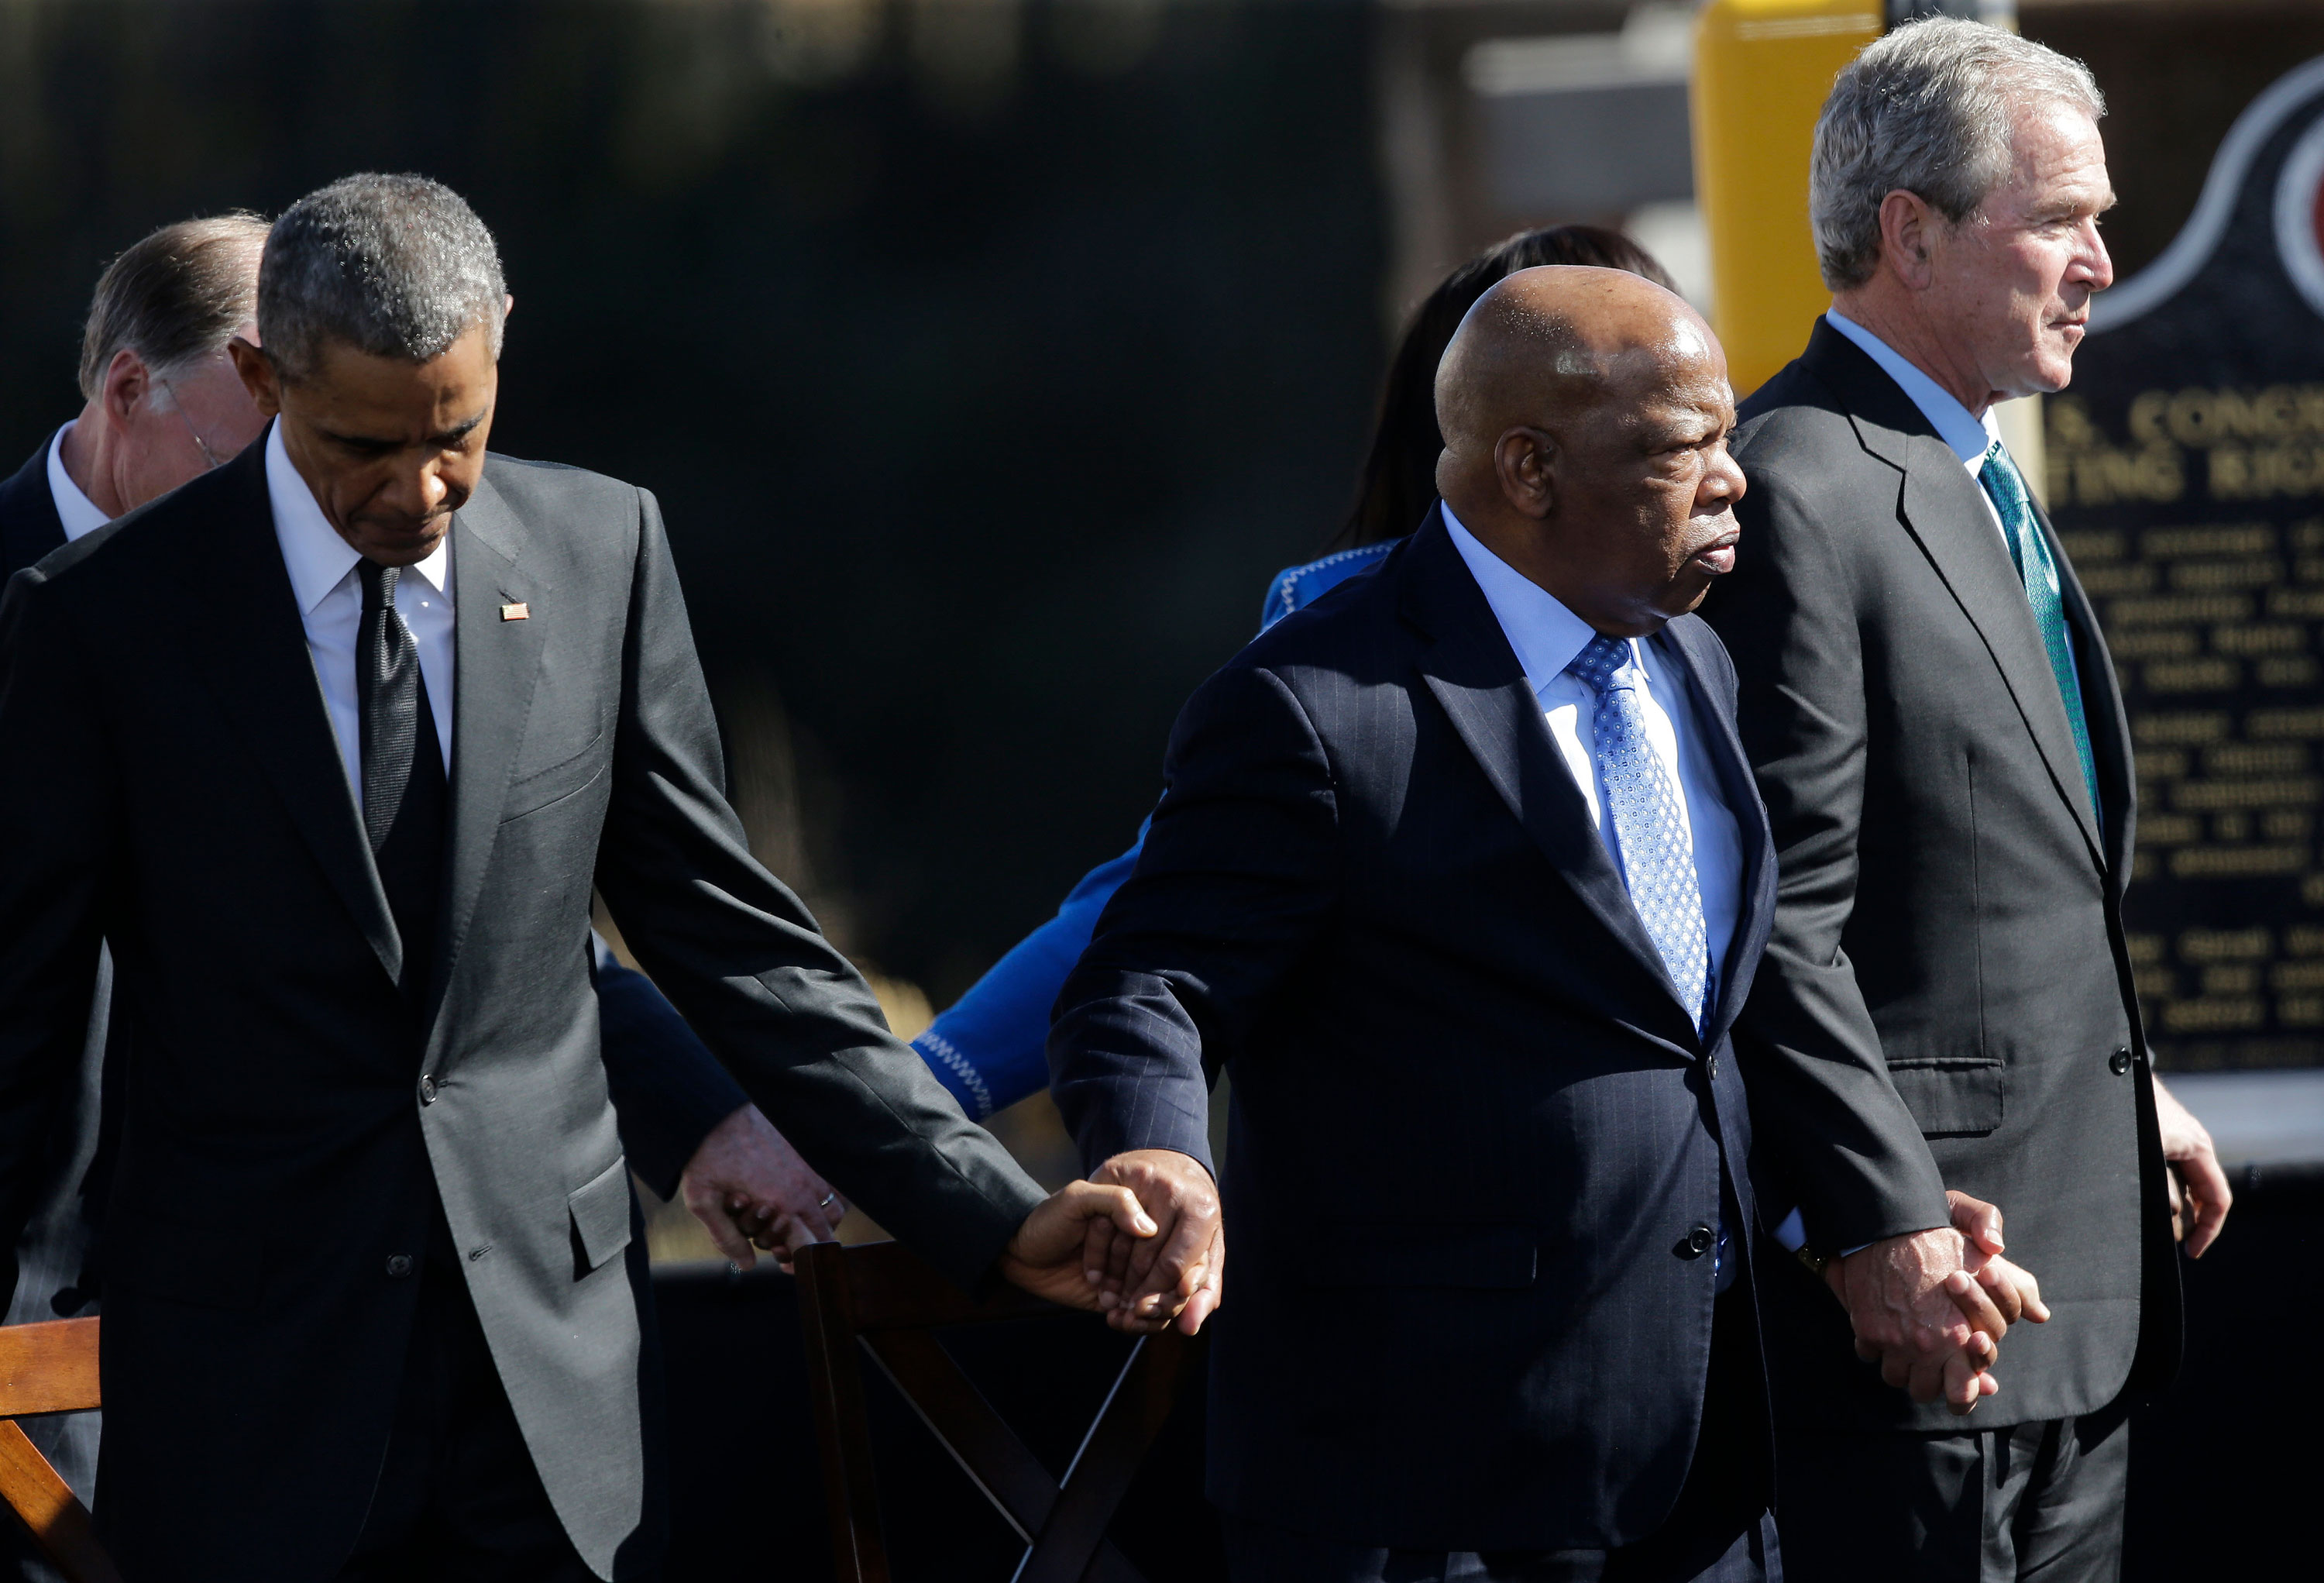 Rep. John Lewis stands with President Barack Obama and former President George W. Bush at the Edmund Pettus Bridge in Selma, Alabama, in March 2015.